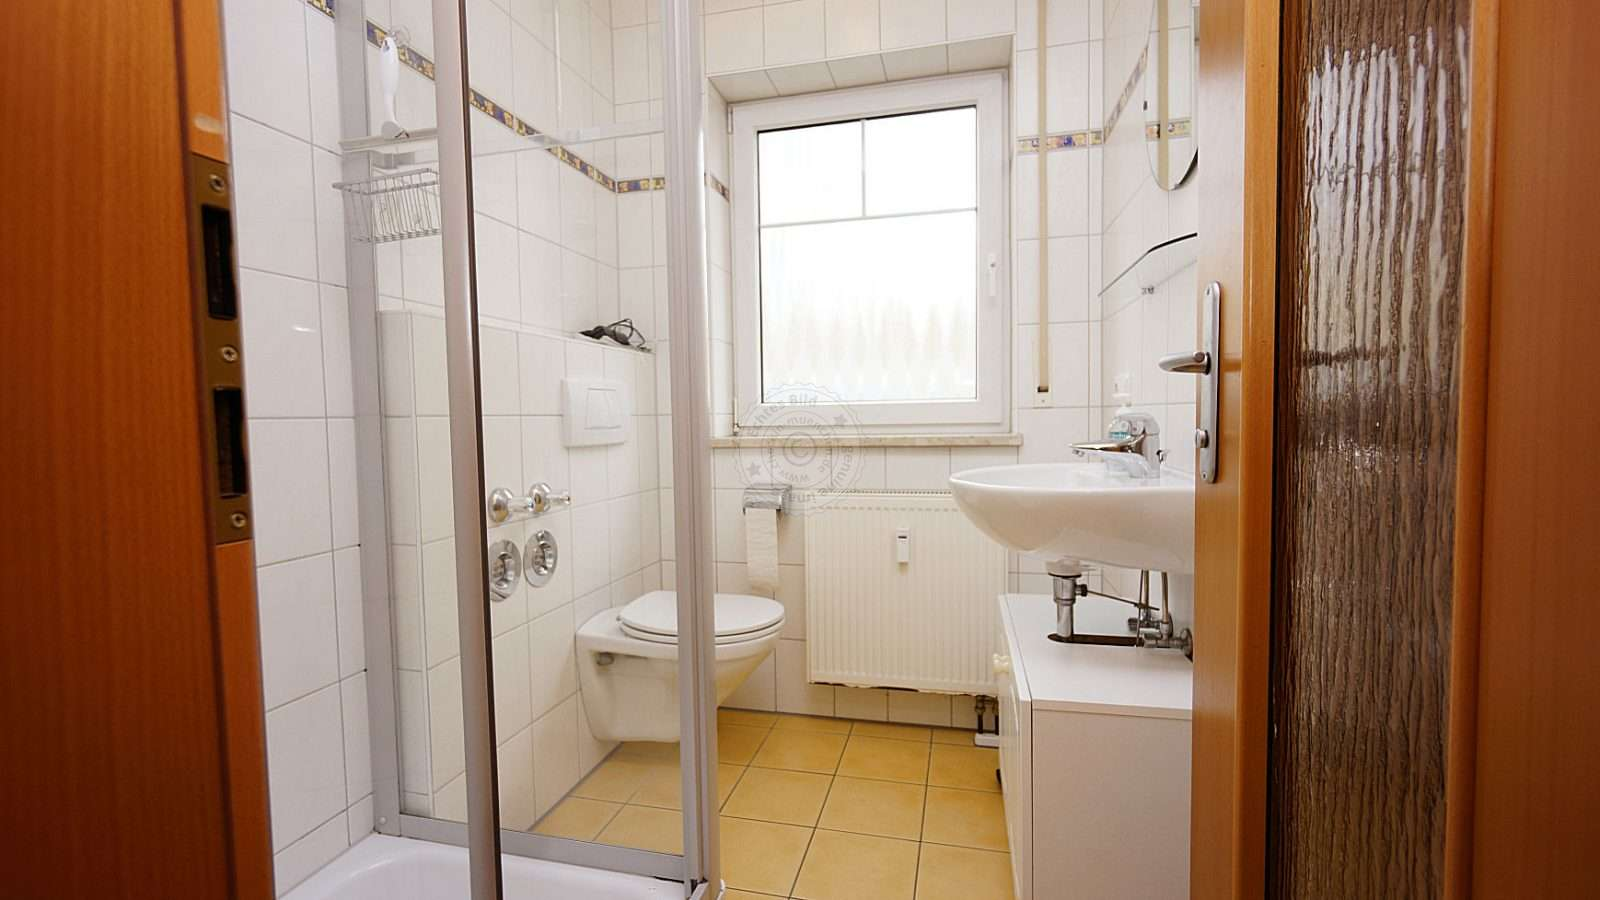 The bright, modern bathroom adorns this accommodation